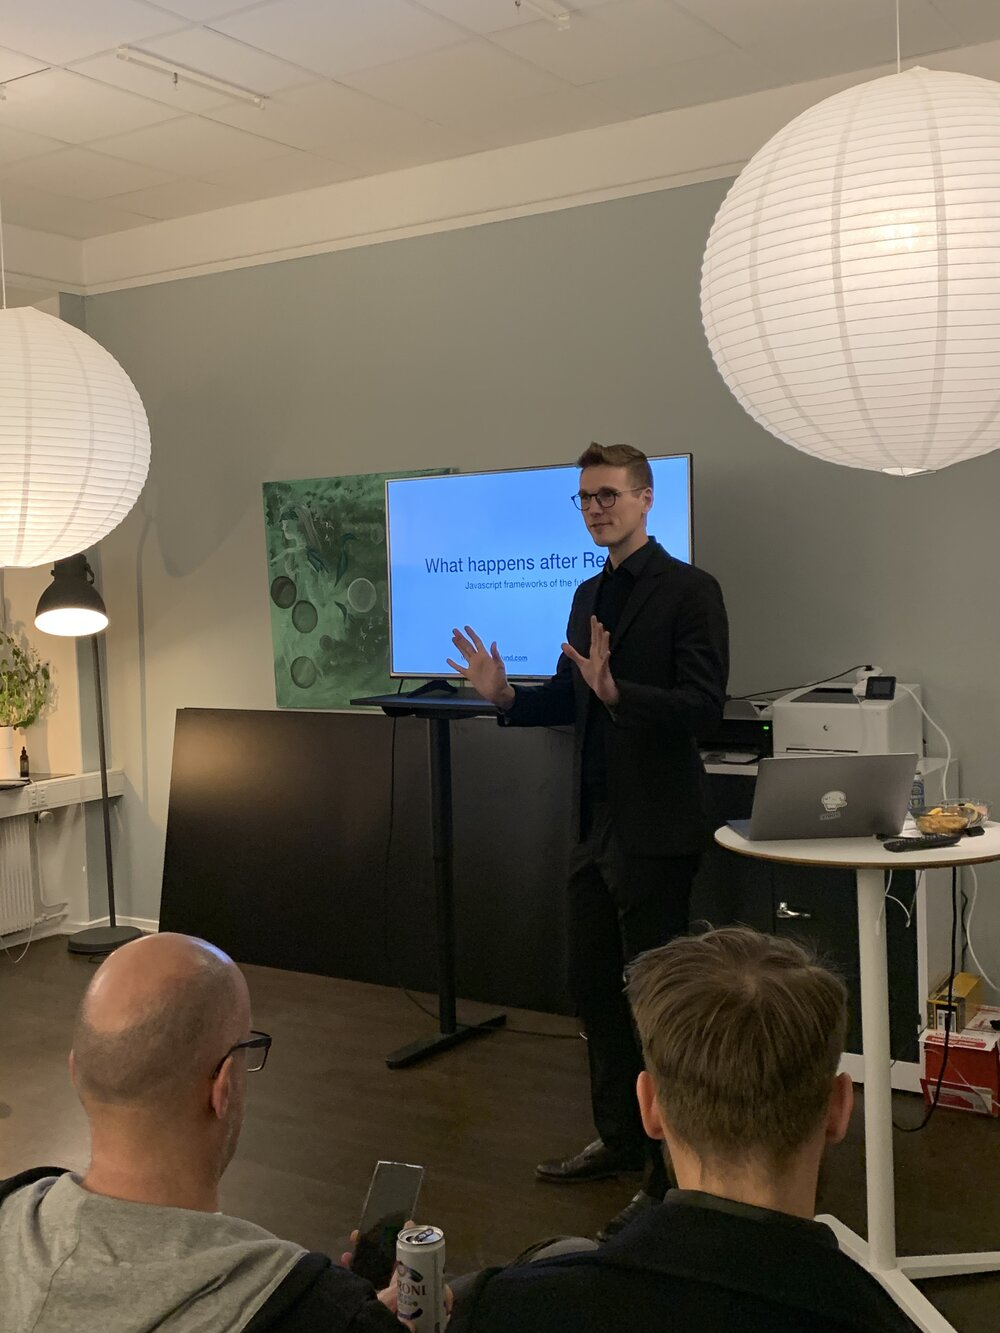 """I gave a talk at SthlmJS #58! - I gave another talk at SthlmJS (#58). This time hosted at Developers Bay, whom I work with quite a lot.The talk was about """"What happens after React?"""" and posits that non-shadow dom frameworks, like Svelte, might take over in the future because they are just so much more performant. Not to mention nice to work with!"""